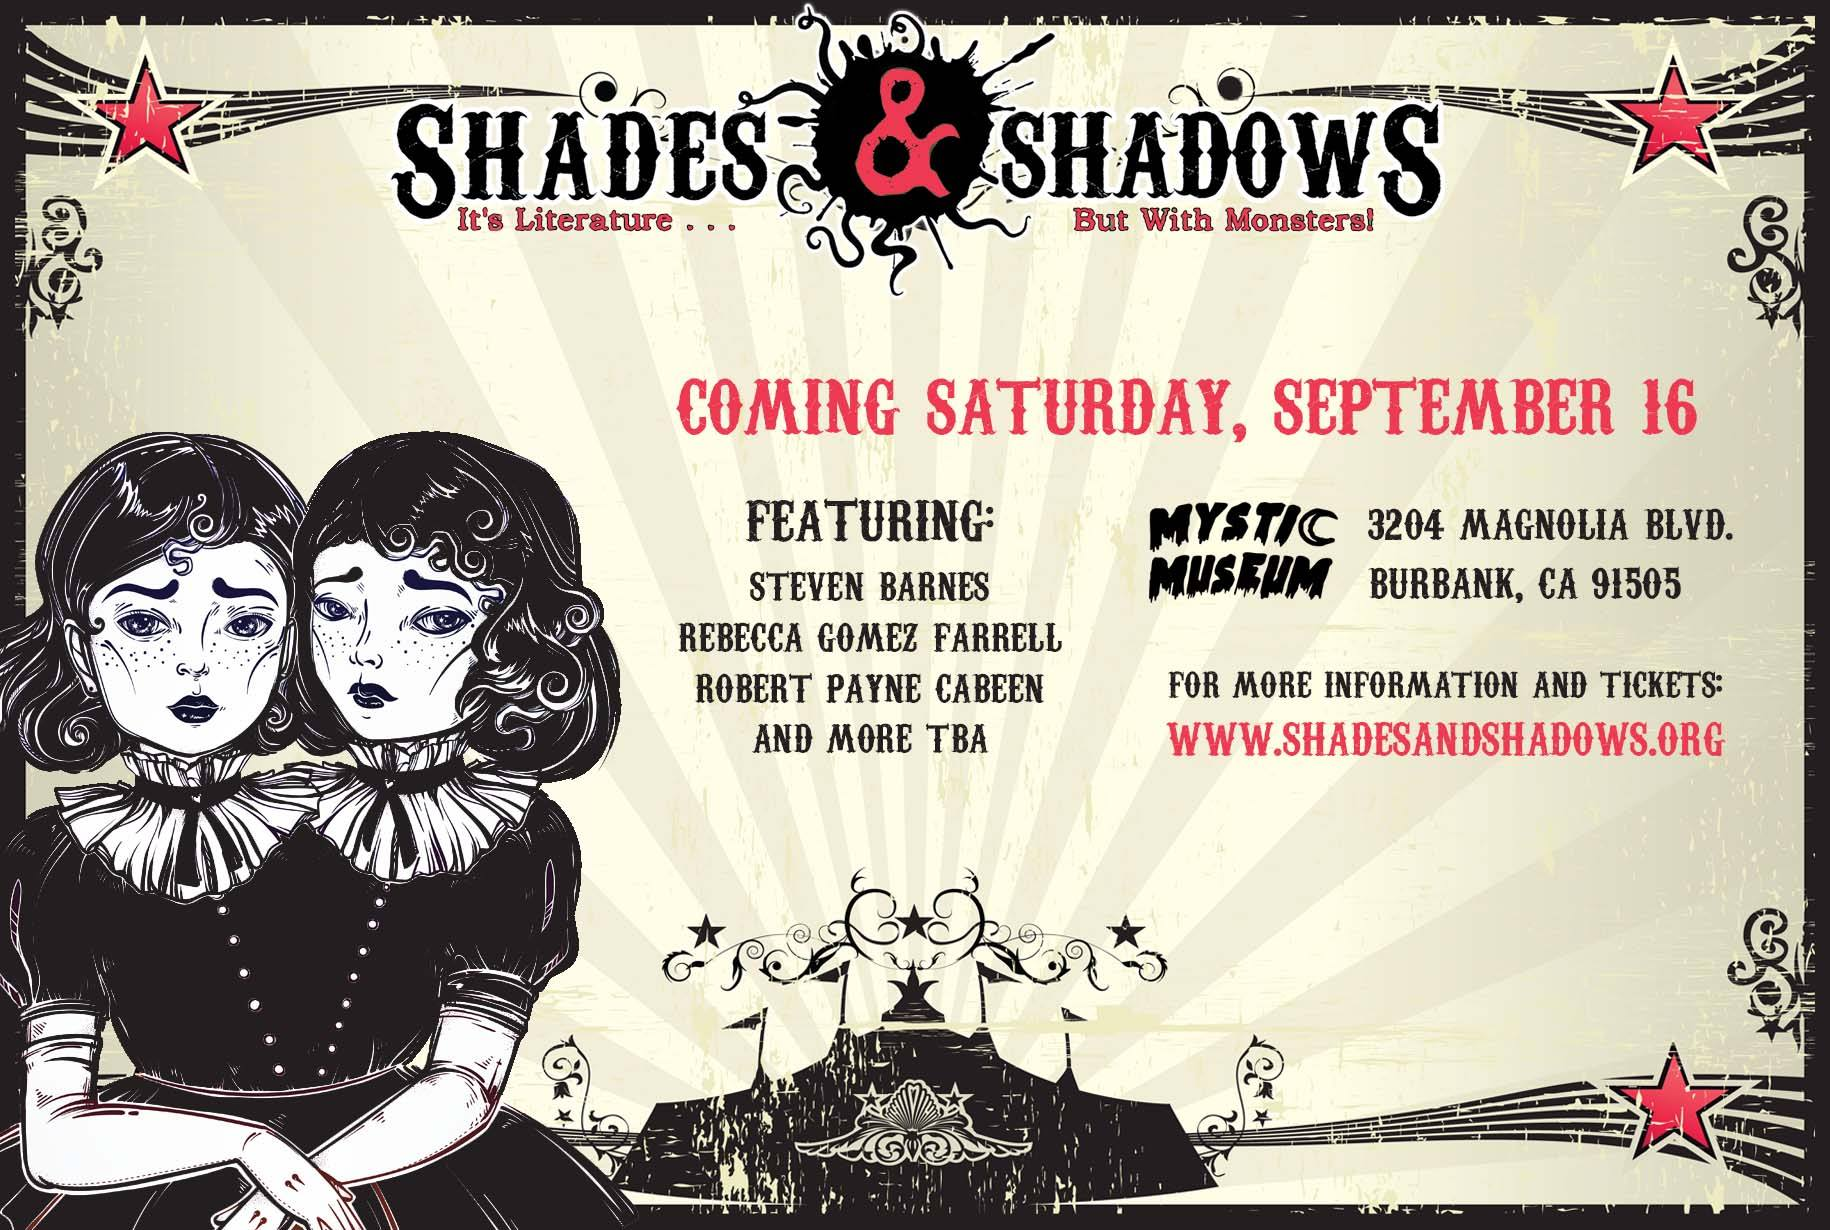 shades and shadows reading rebecca gomez farrell